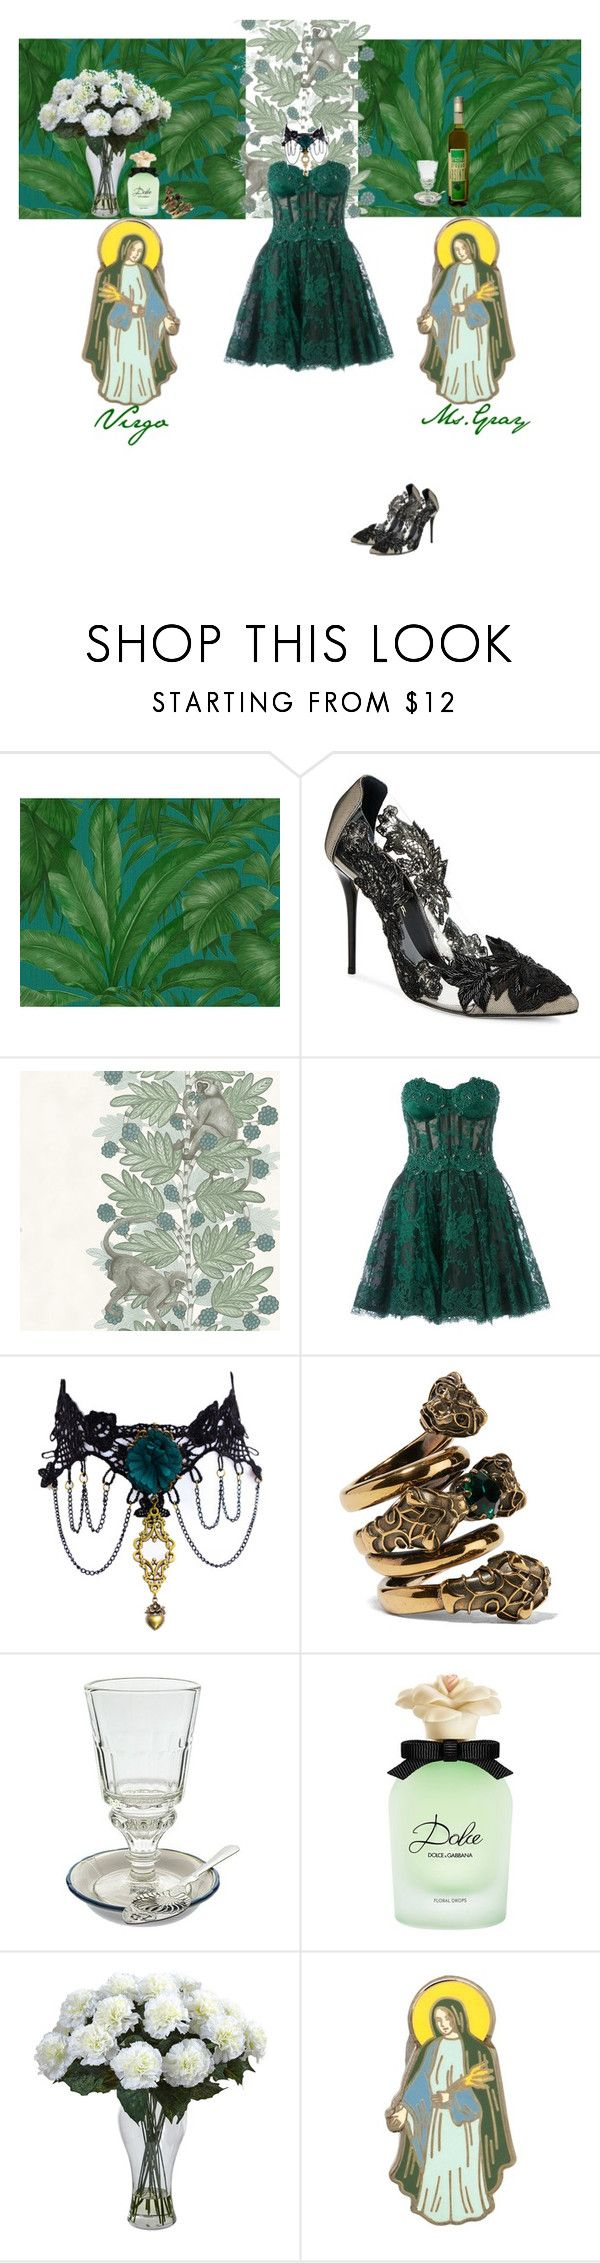 """""""Virgo"""" by fmsgray ❤ liked on Polyvore featuring Versace, Oscar de la Renta, Cole & Son, Zuhair Murad, Gucci, Dolce&Gabbana and PINTRILL"""